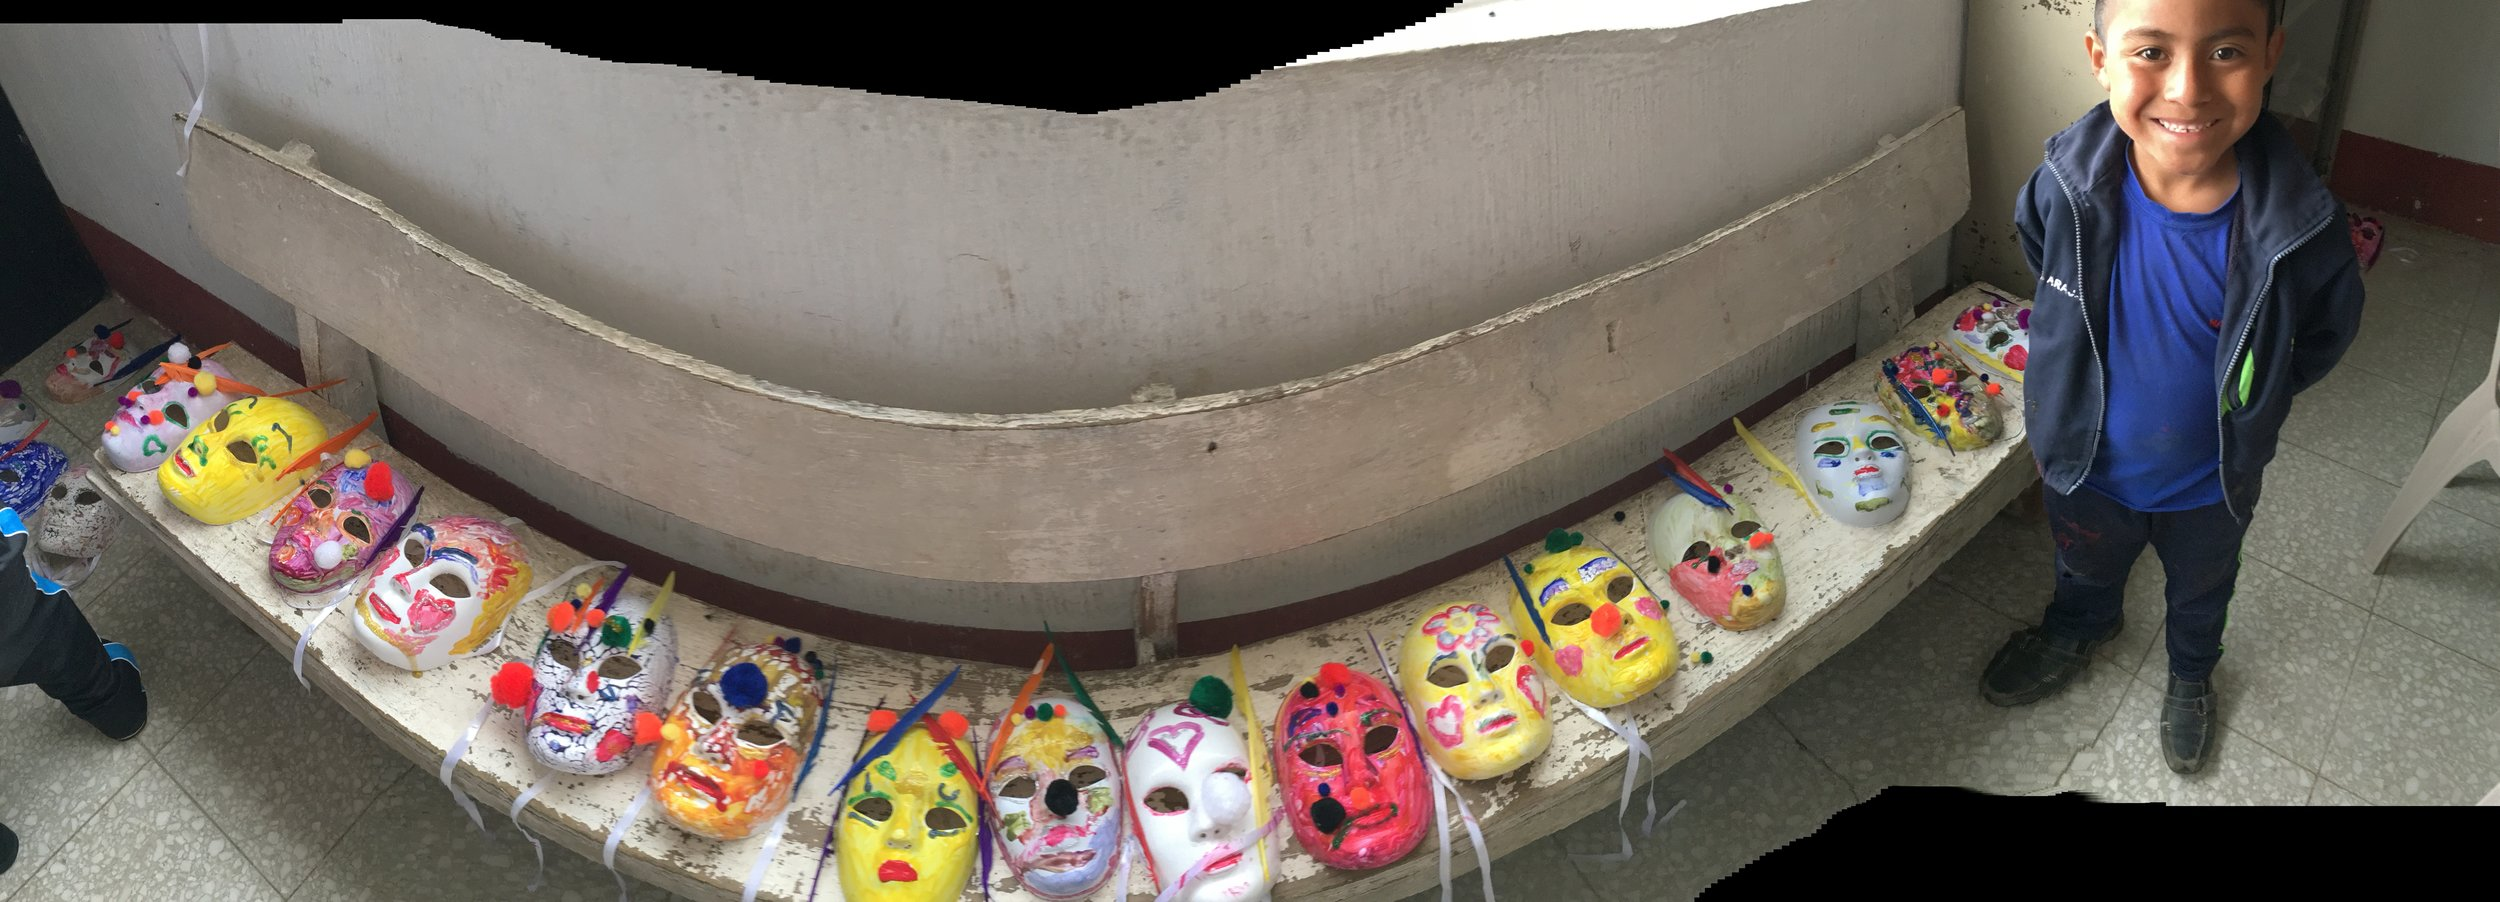 Joel took this cool image of the masks the children made.